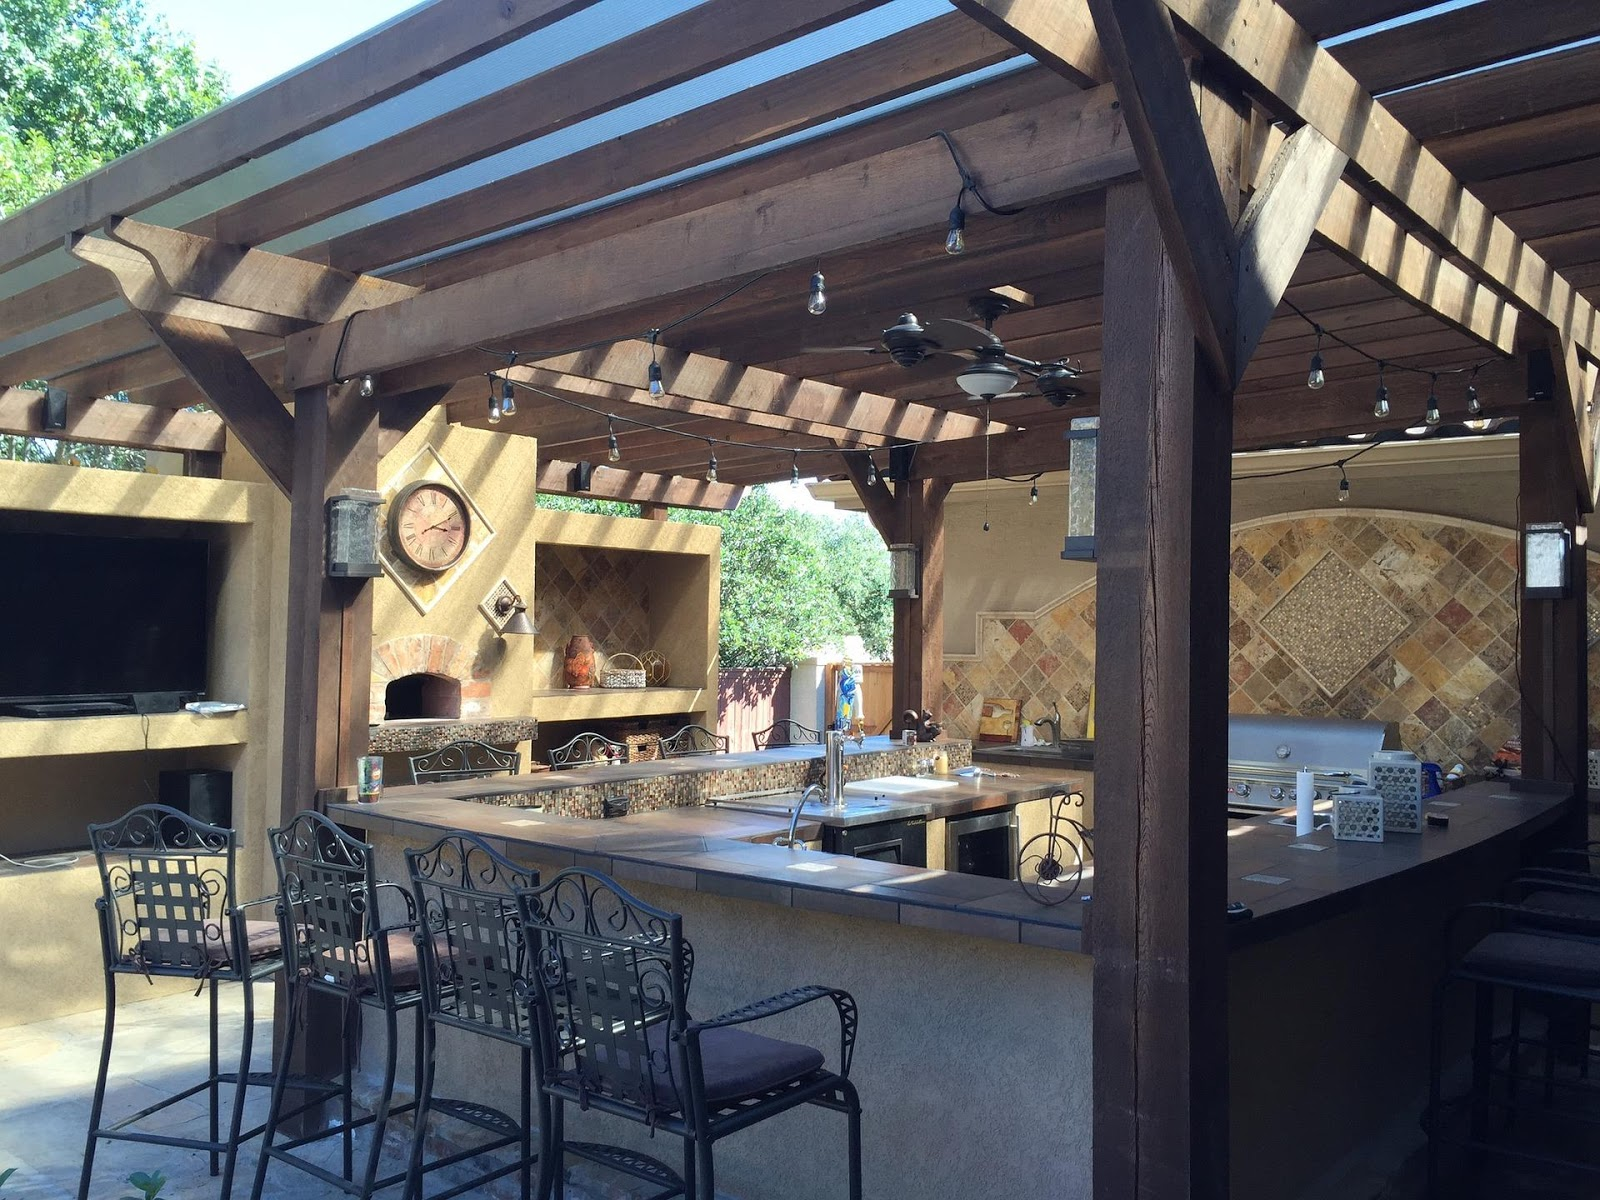 How To Build an Outdoor Kitchen on a Budget